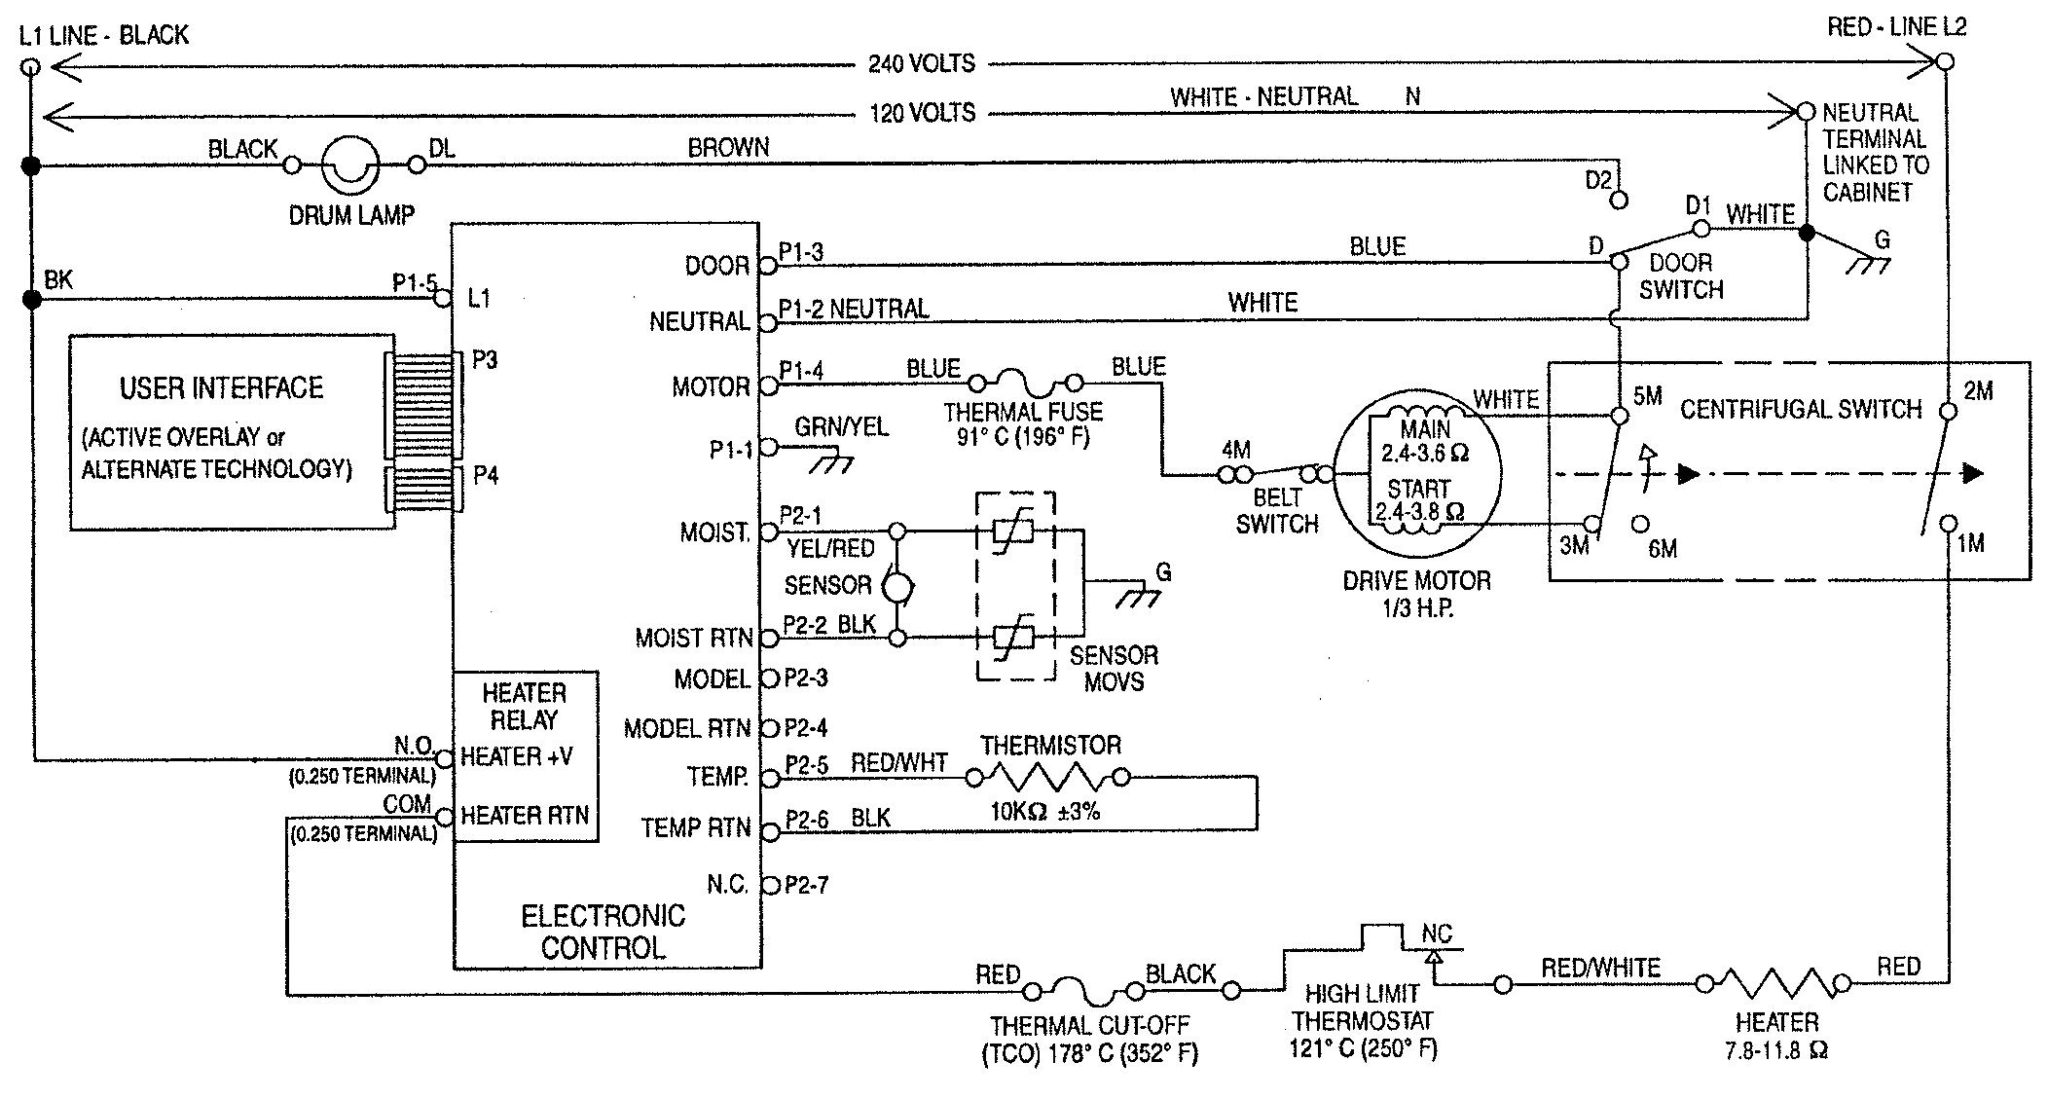 5e5e327 wiring diagram for air dryer | wiring library  wiring library